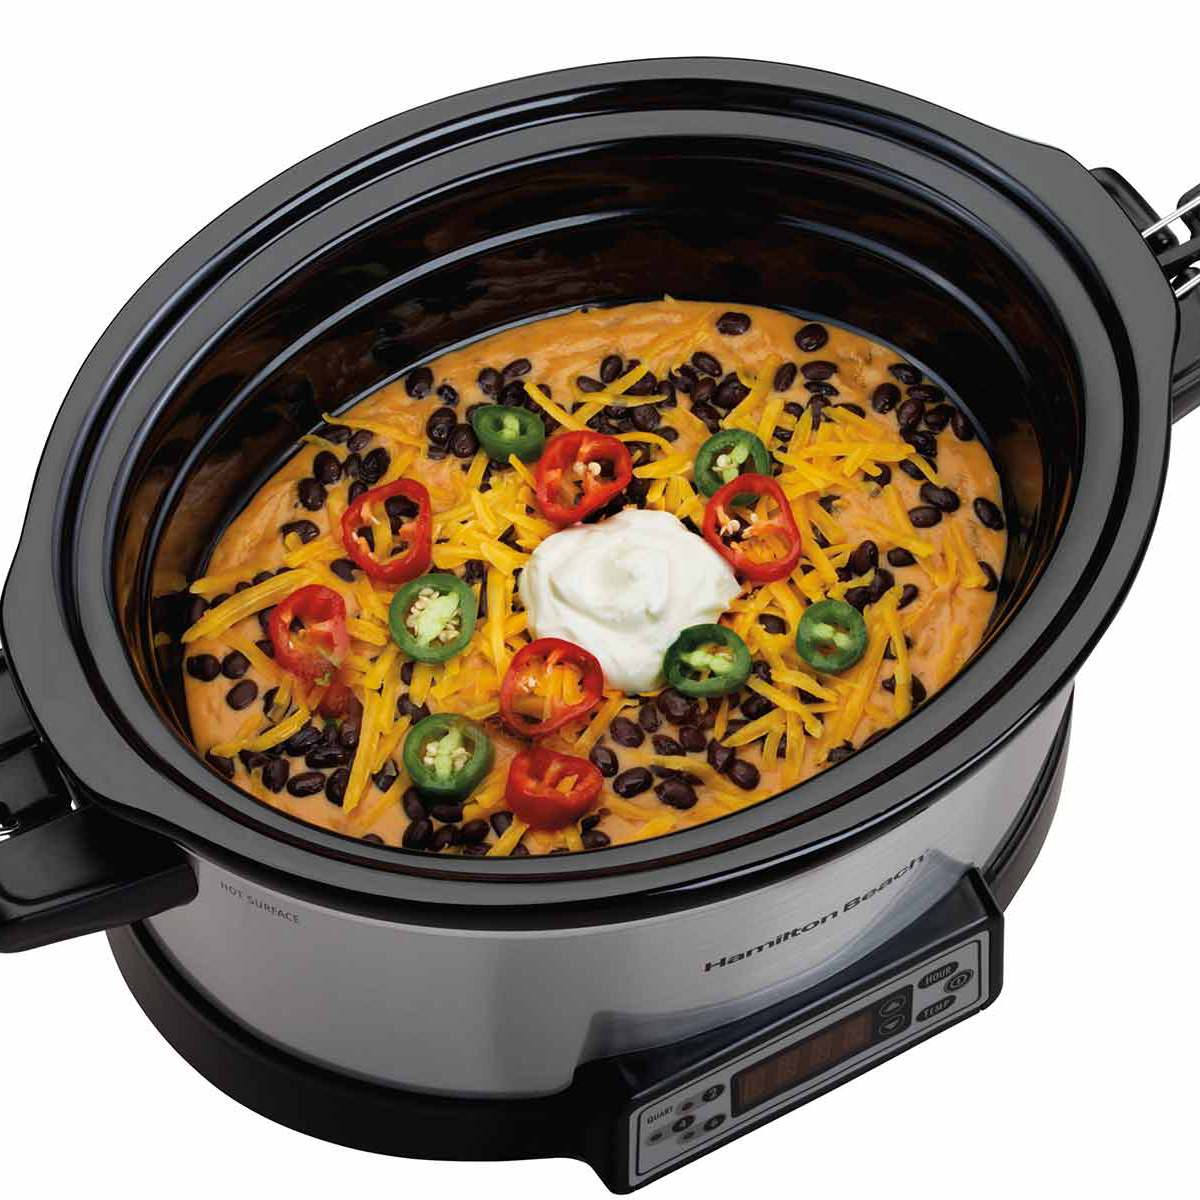 Programmable Right Size™ Multi-Quart Slow Cooker (33642)